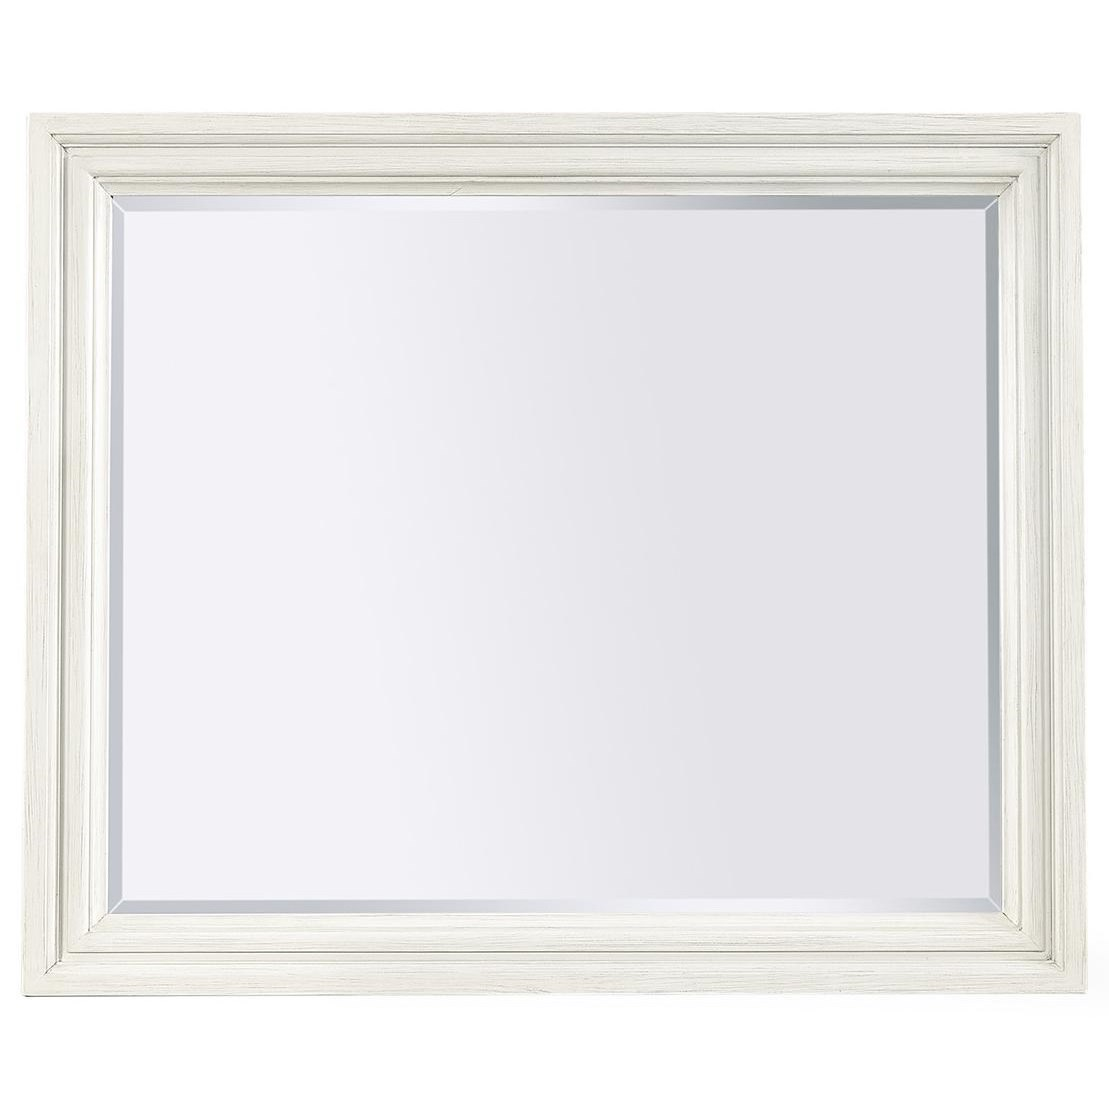 Caraway Mirror  by Aspenhome at Gill Brothers Furniture